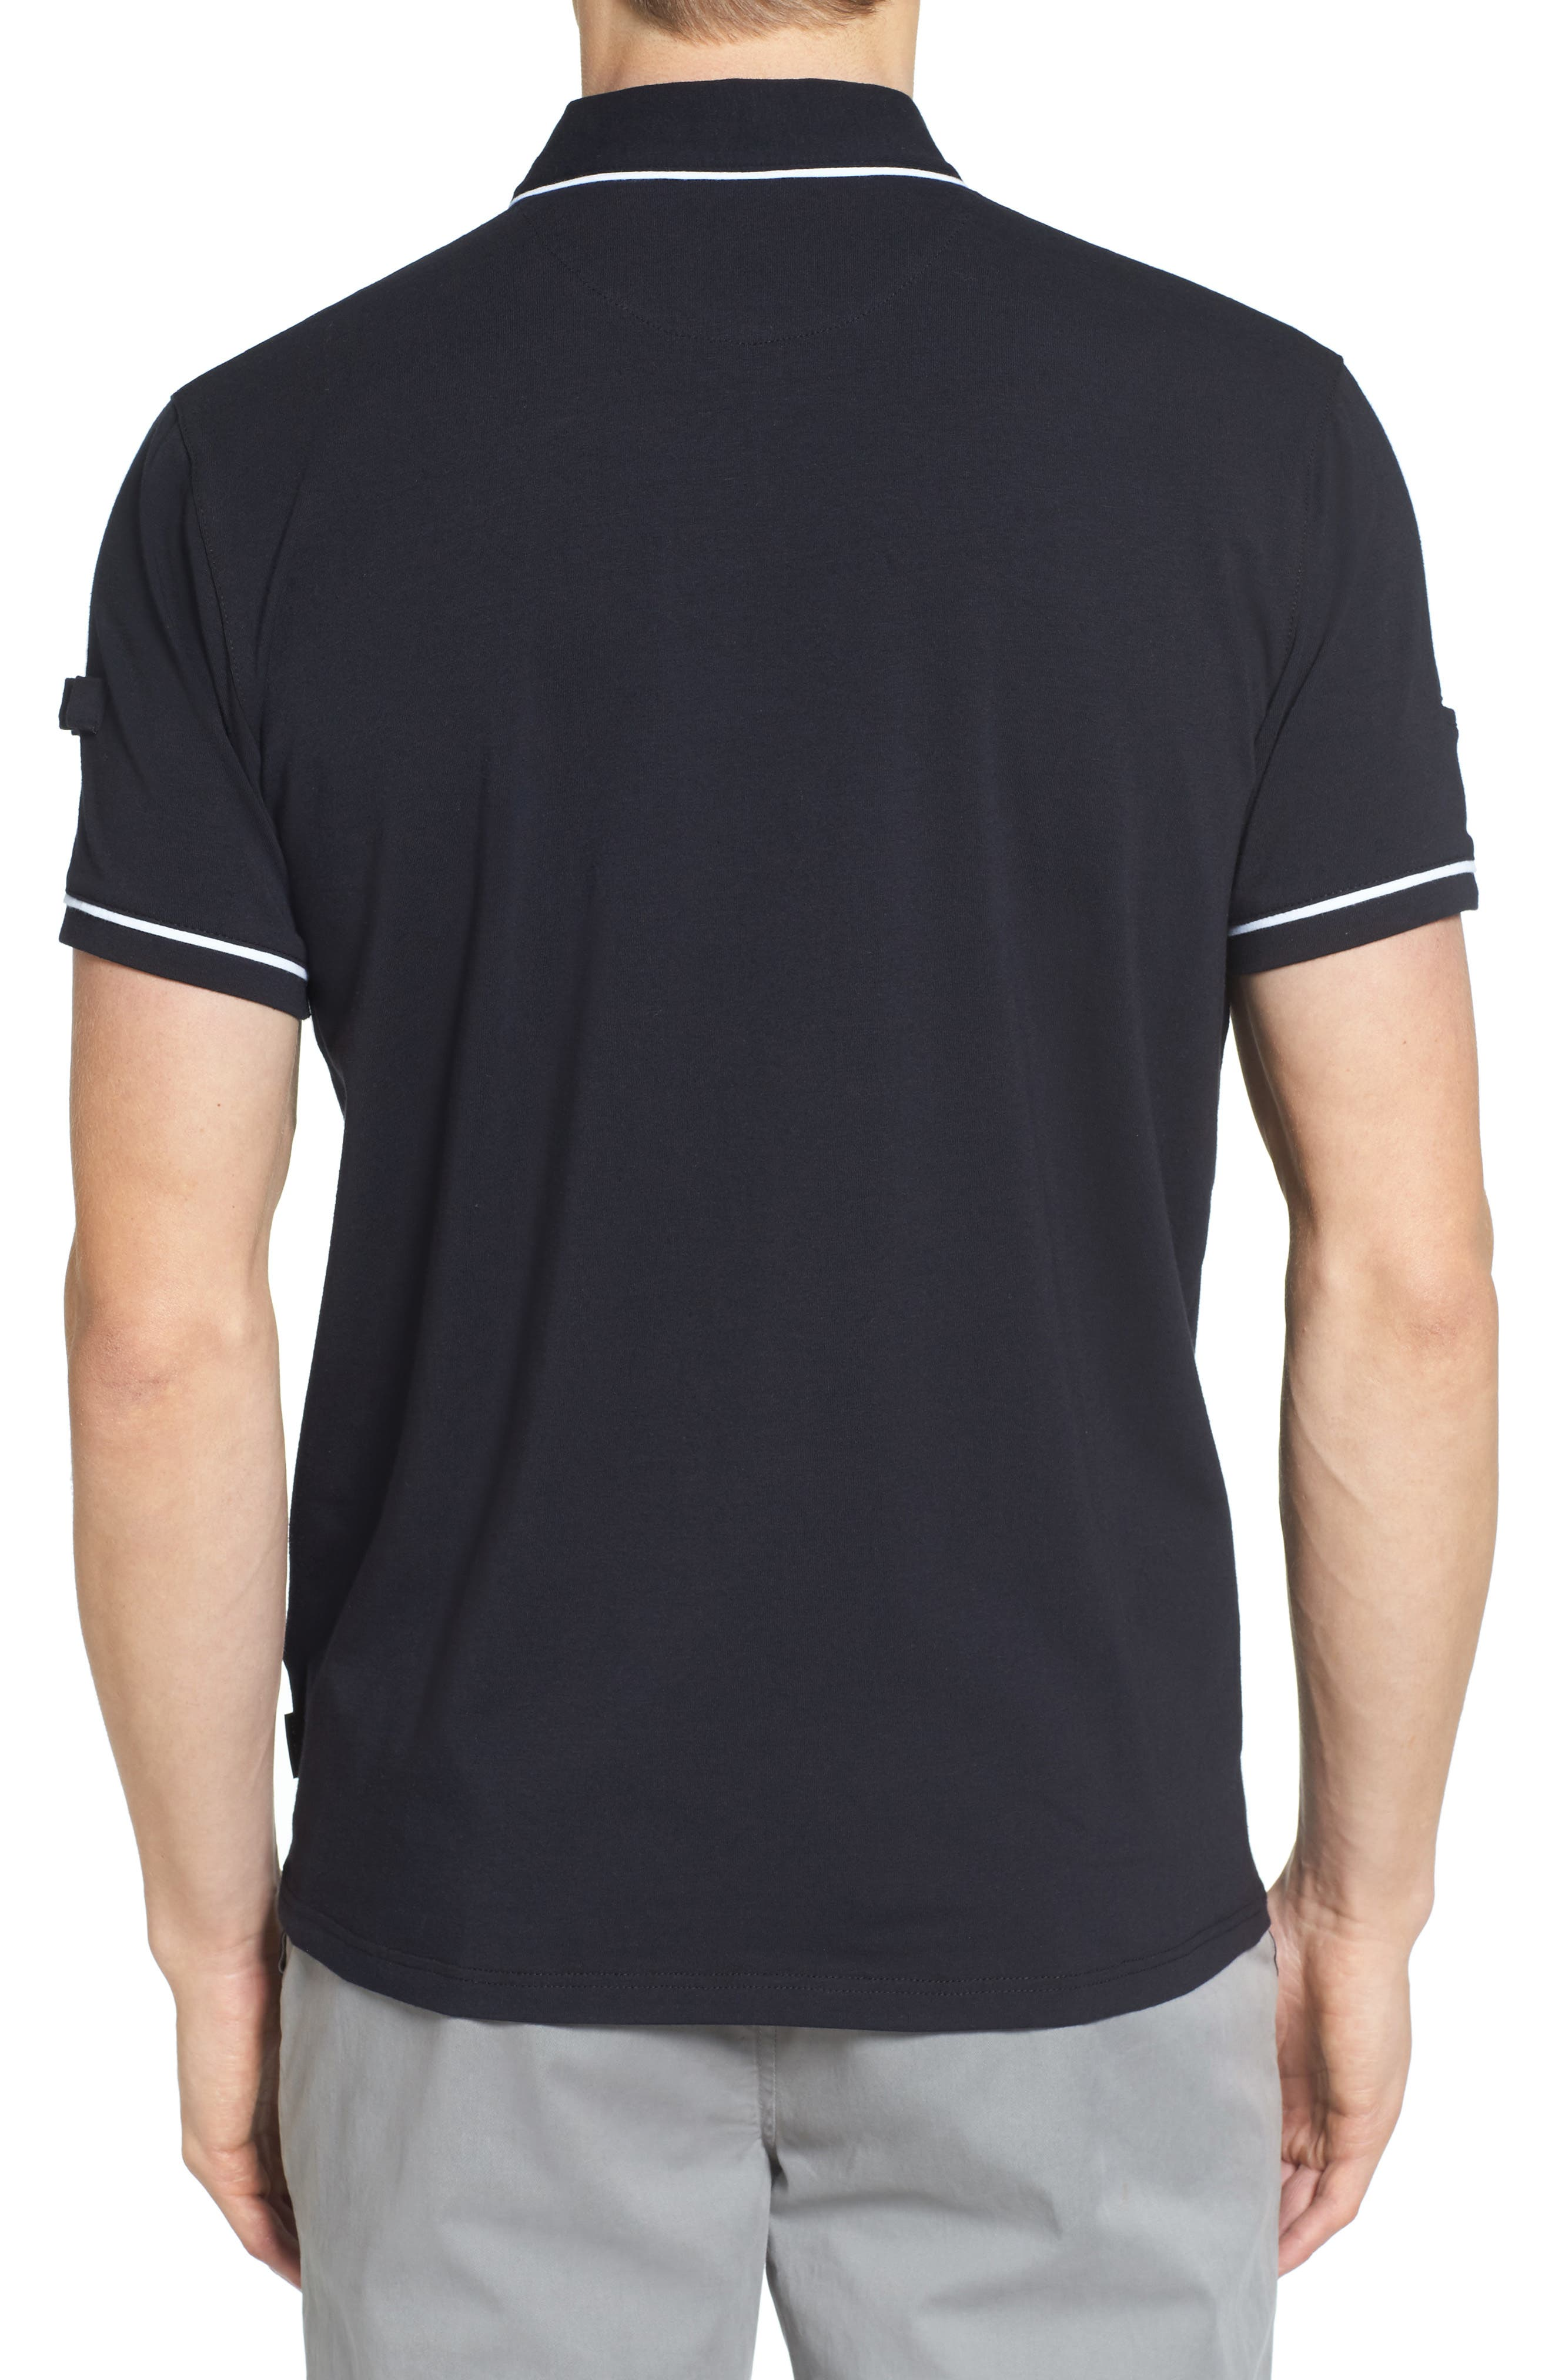 Playgo Piped Trim Golf Polo,                             Alternate thumbnail 2, color,                             001